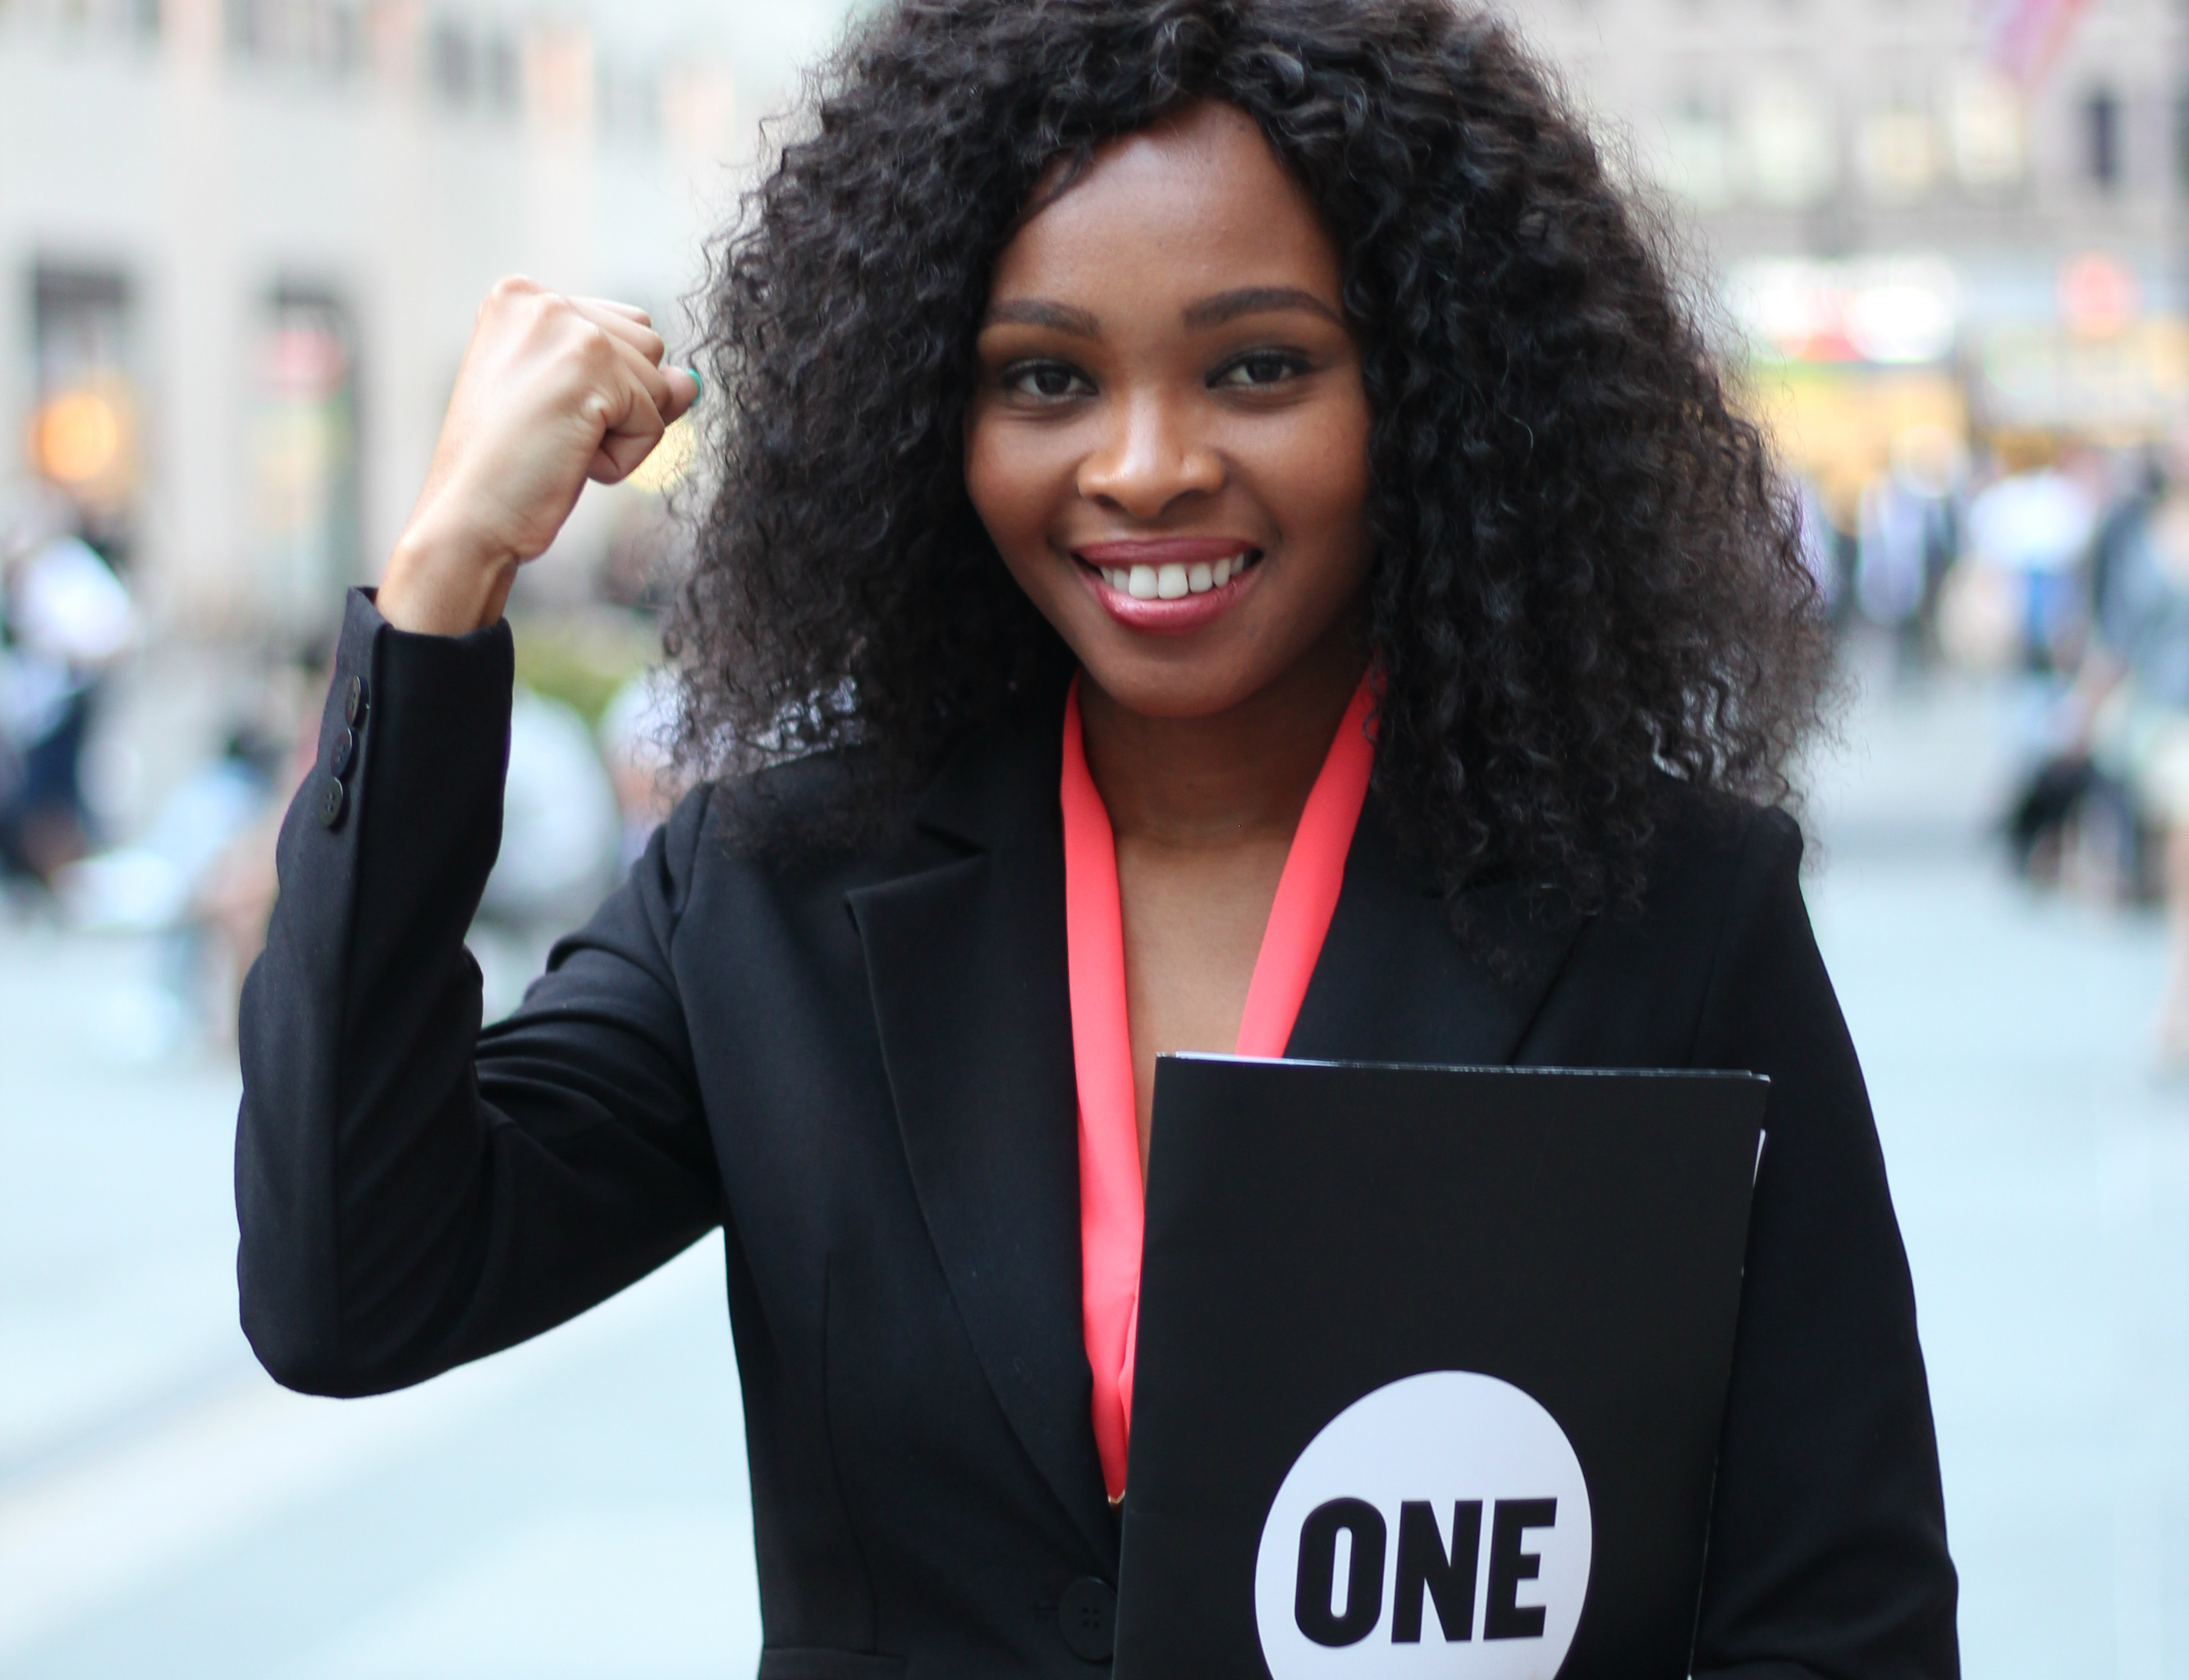 Adding South Africa's Voice at UNGA – the Start of the Strong Girl's Journey